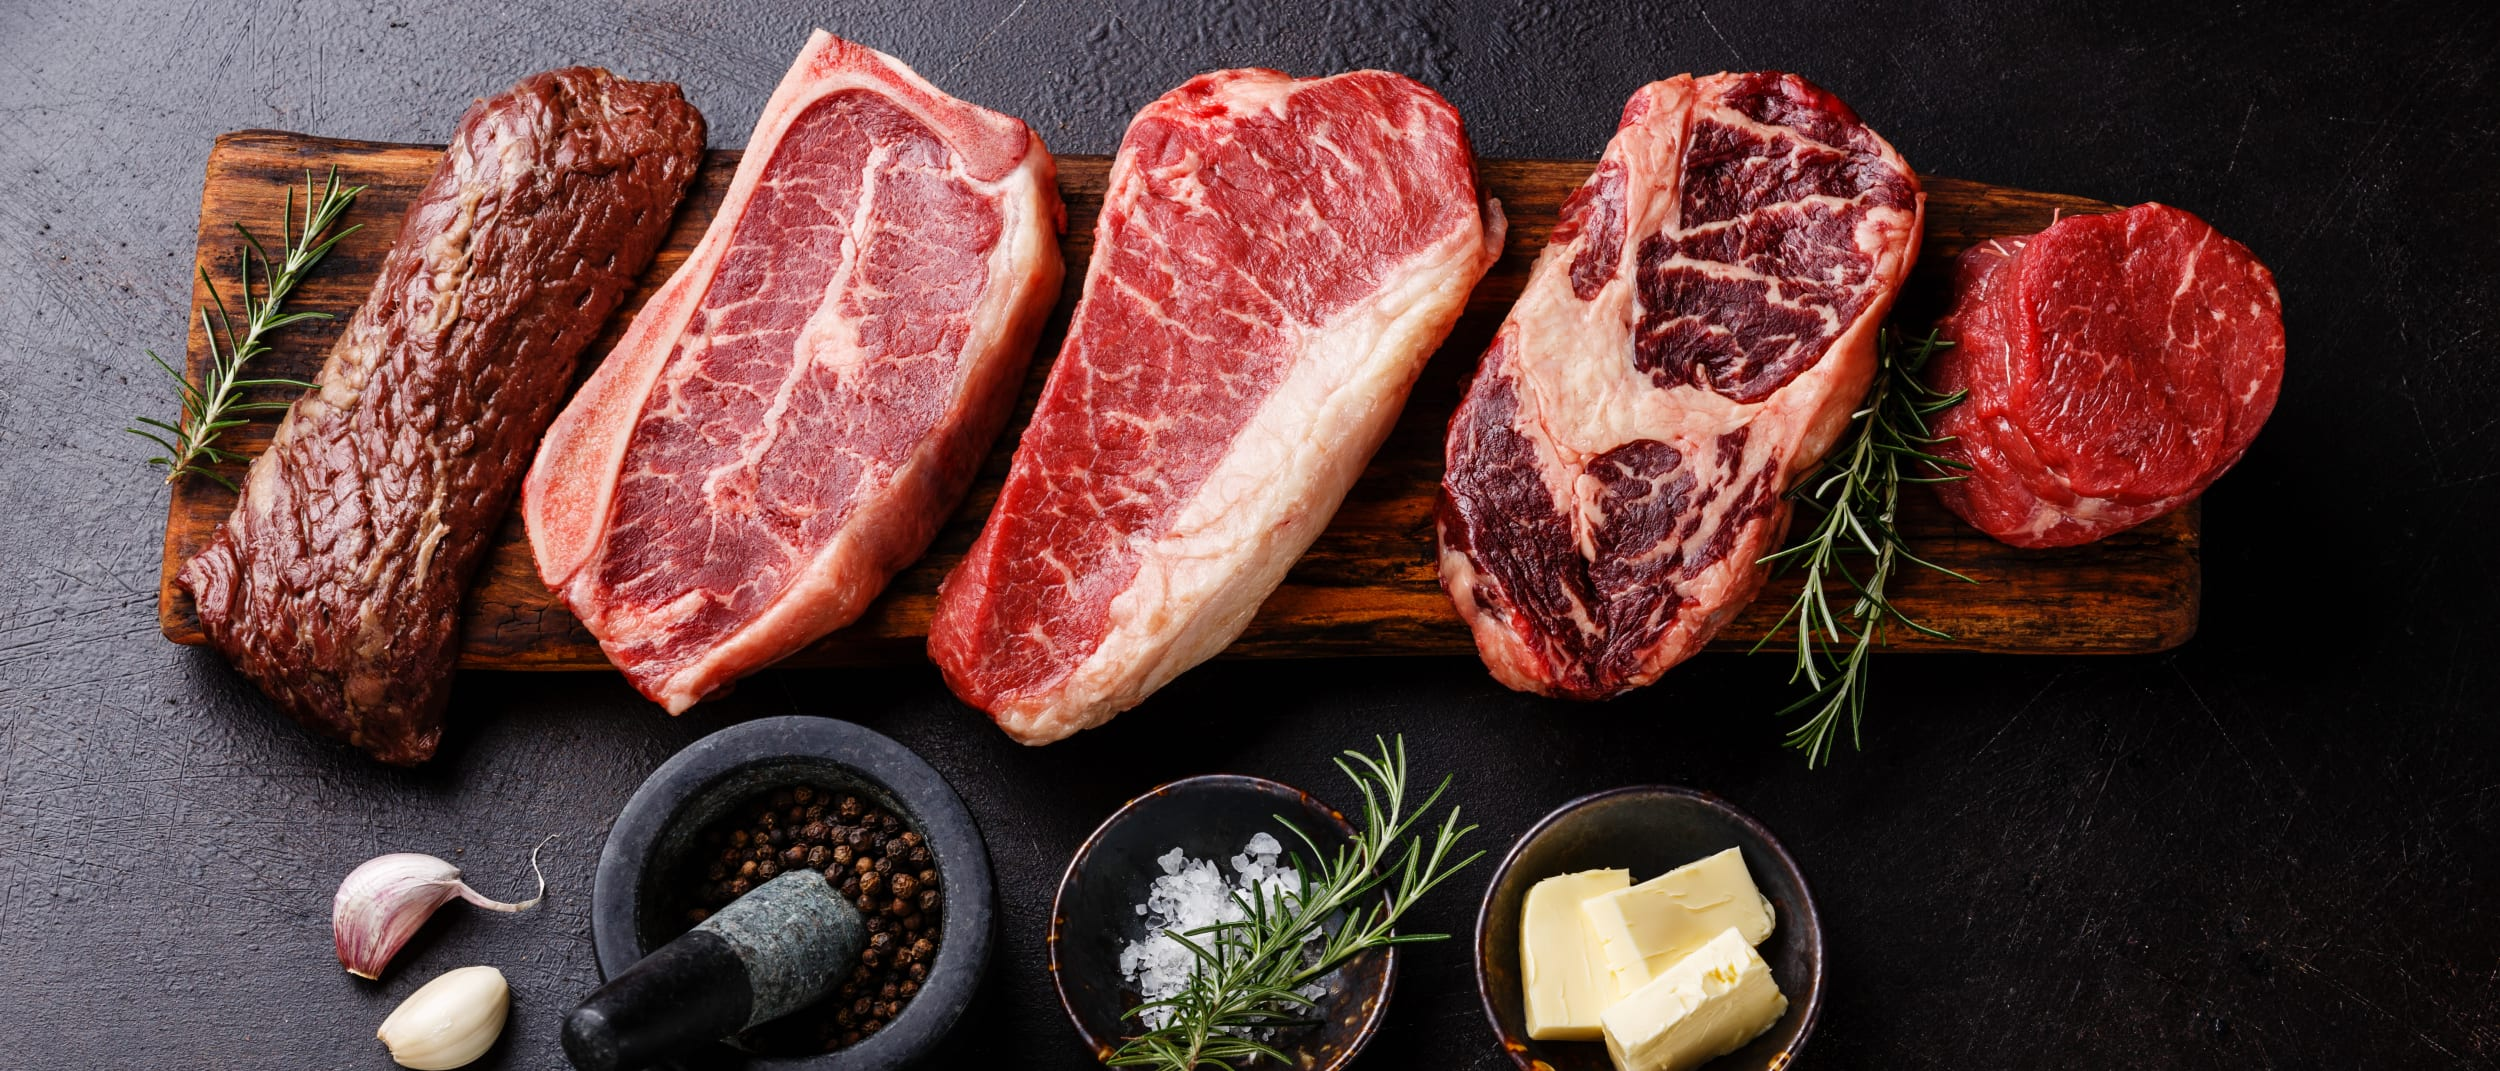 Our butcher's guide on choosing the perfect steak